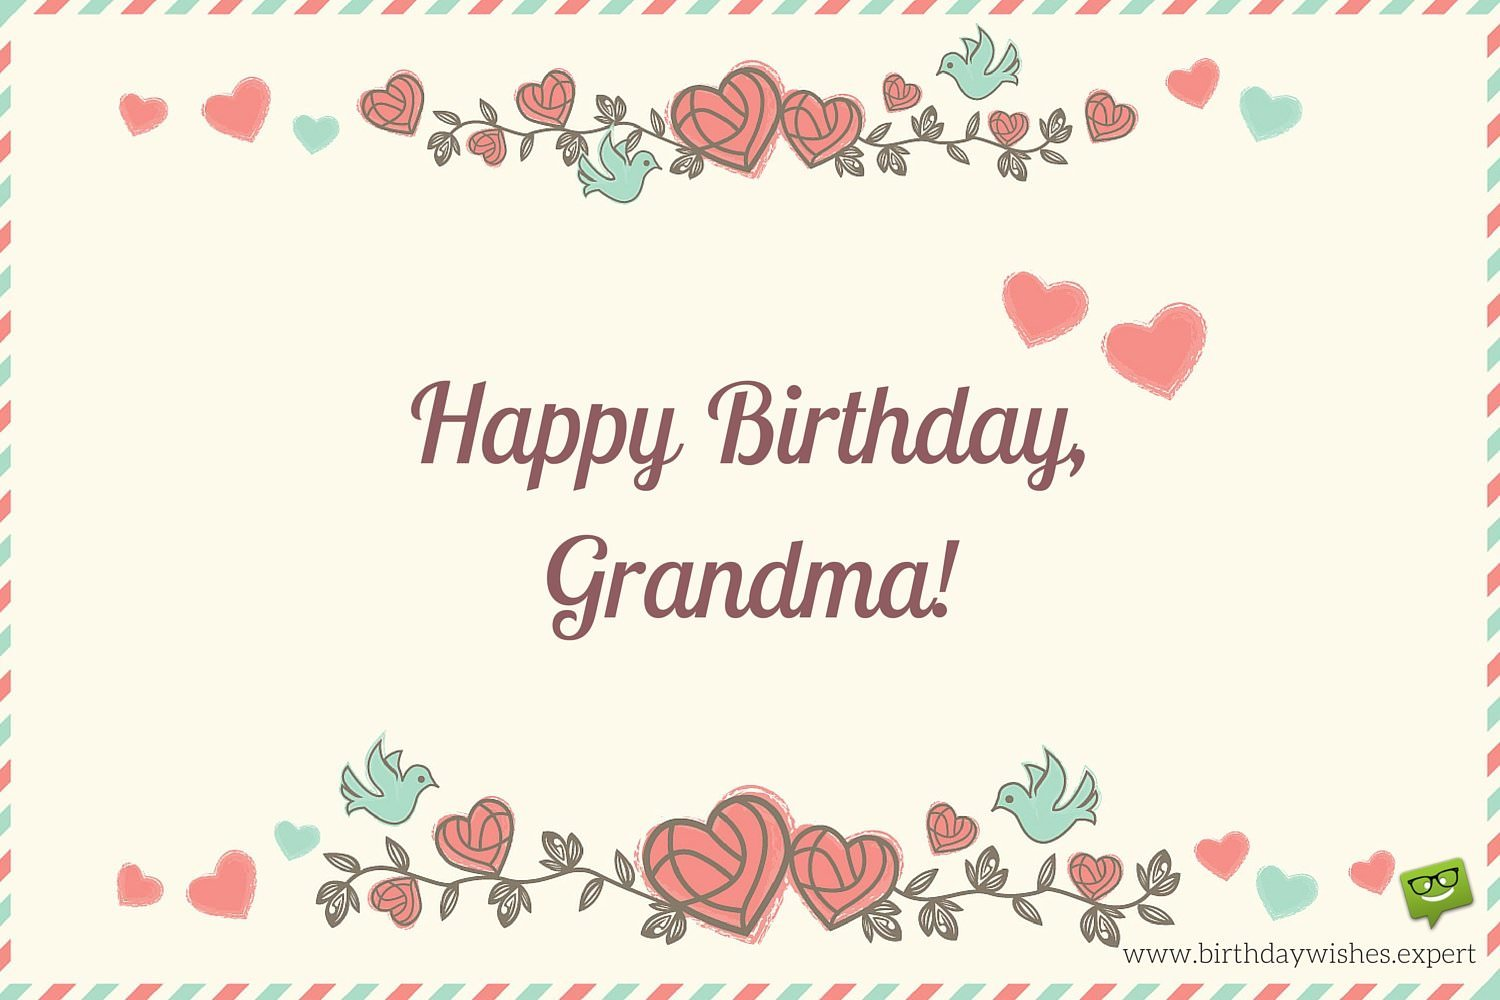 happy birthday grandmother ; Happy-Birthday-Grandma-on-image-of-an-old-envelope-with-flowers-and-cute-hearts